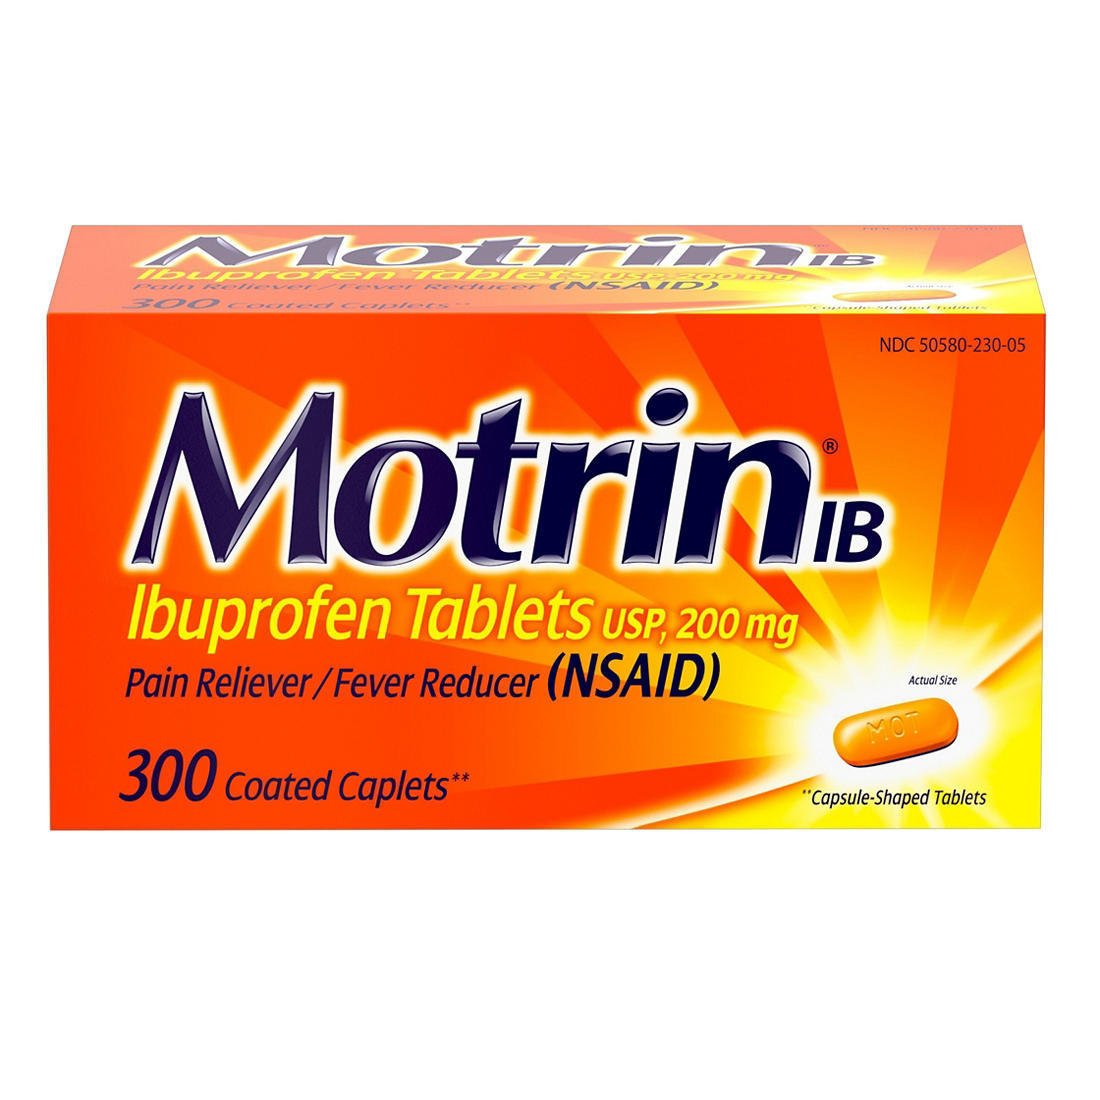 Motrin IB Ibuprofen, Aches and Pain Relief 300 ct